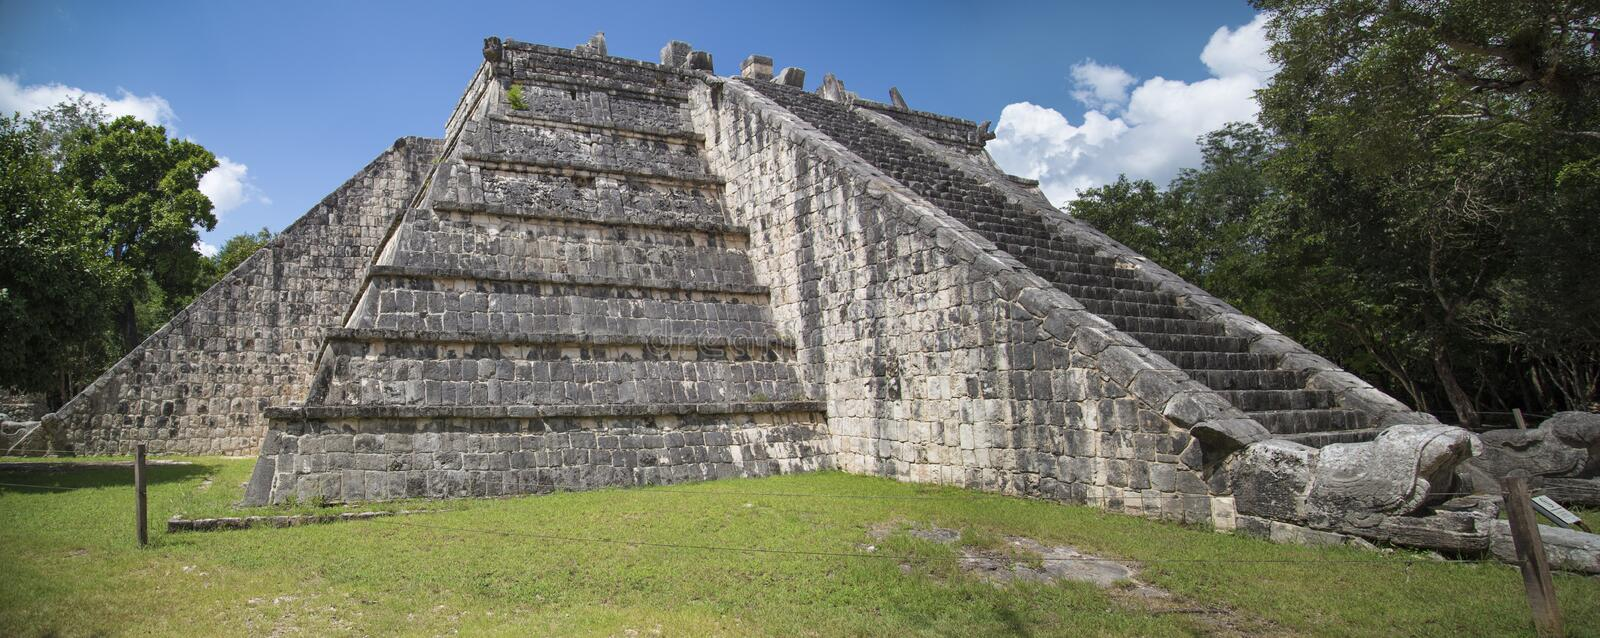 Chichen Itza - Osario royalty free stock images